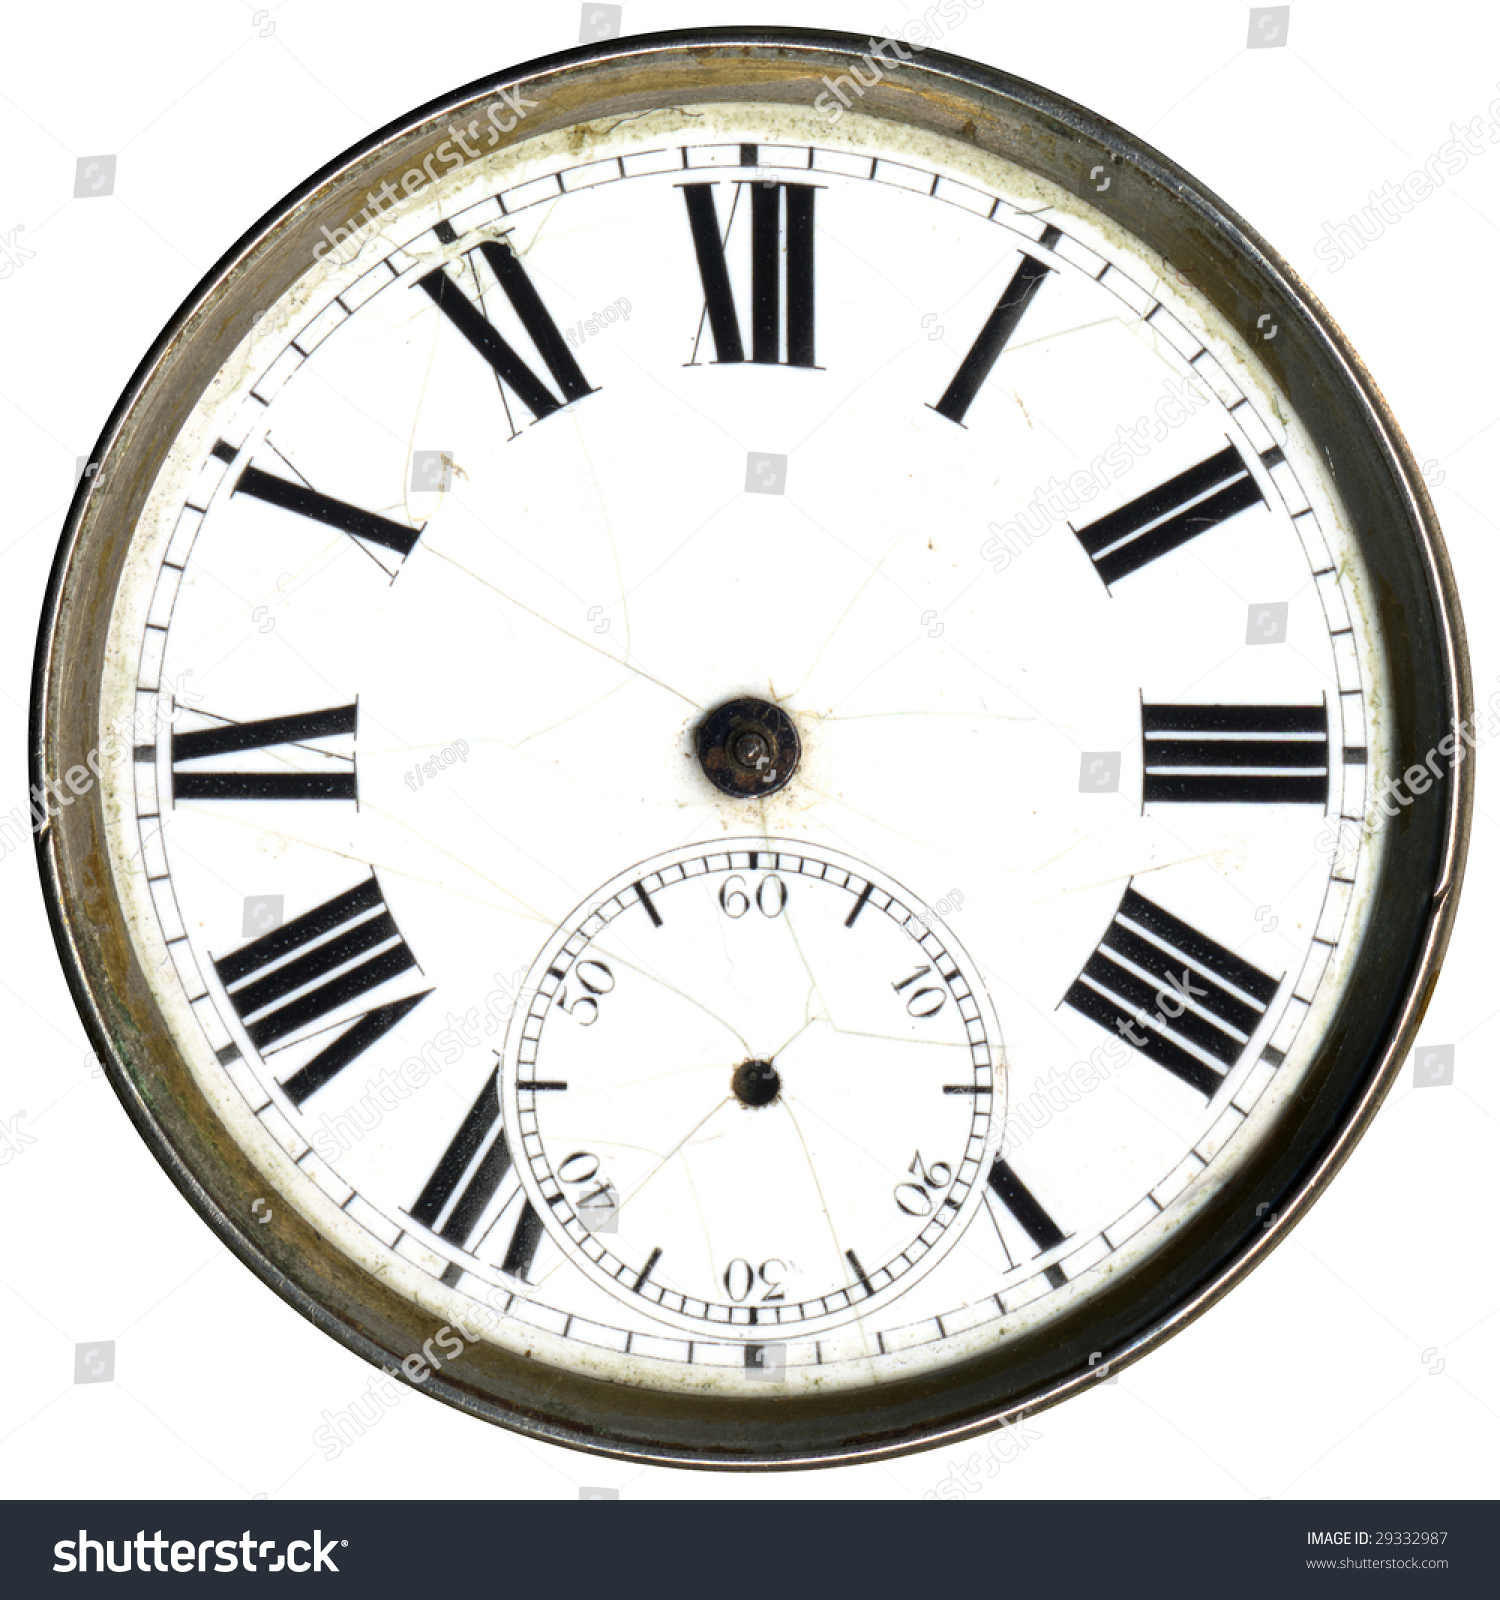 Antique Clock Face Without Hands Stock Photo 29332987 Shutterstock